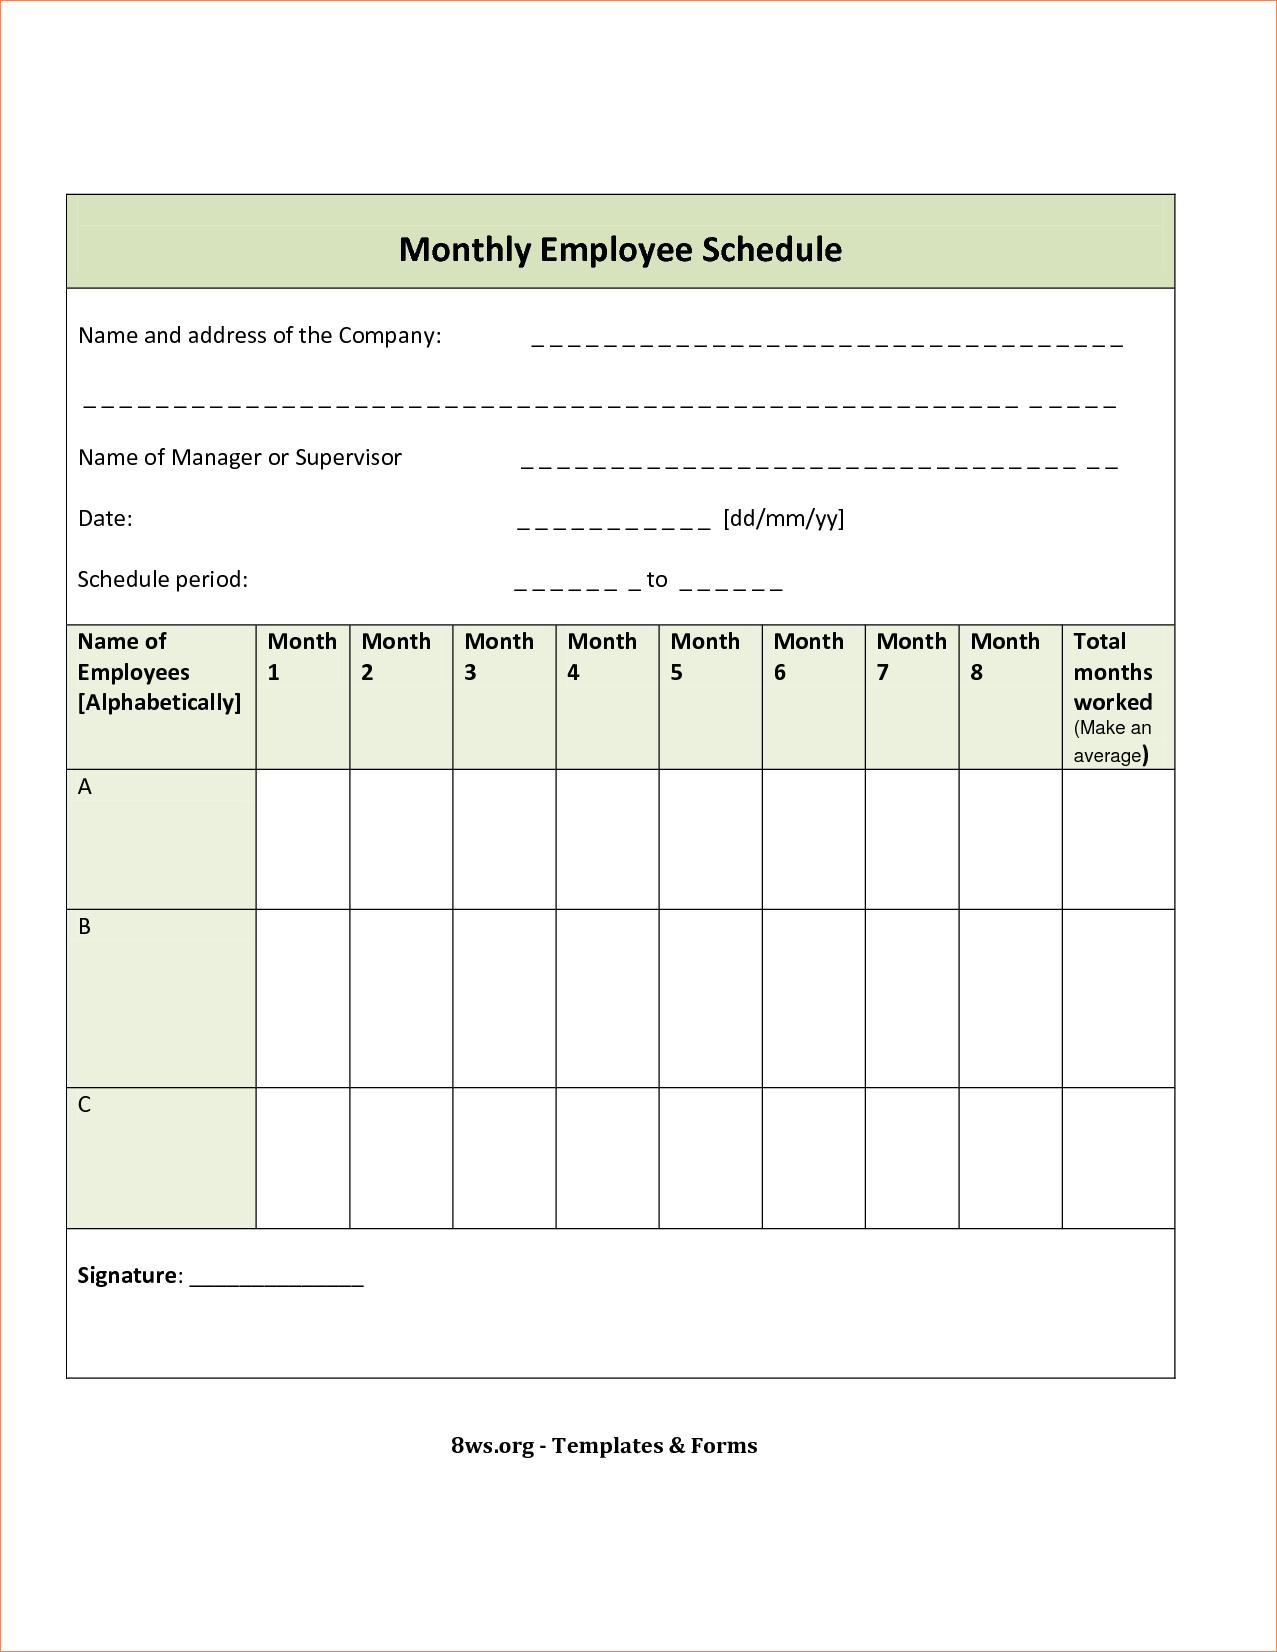 Employee Monthly Schedule Form